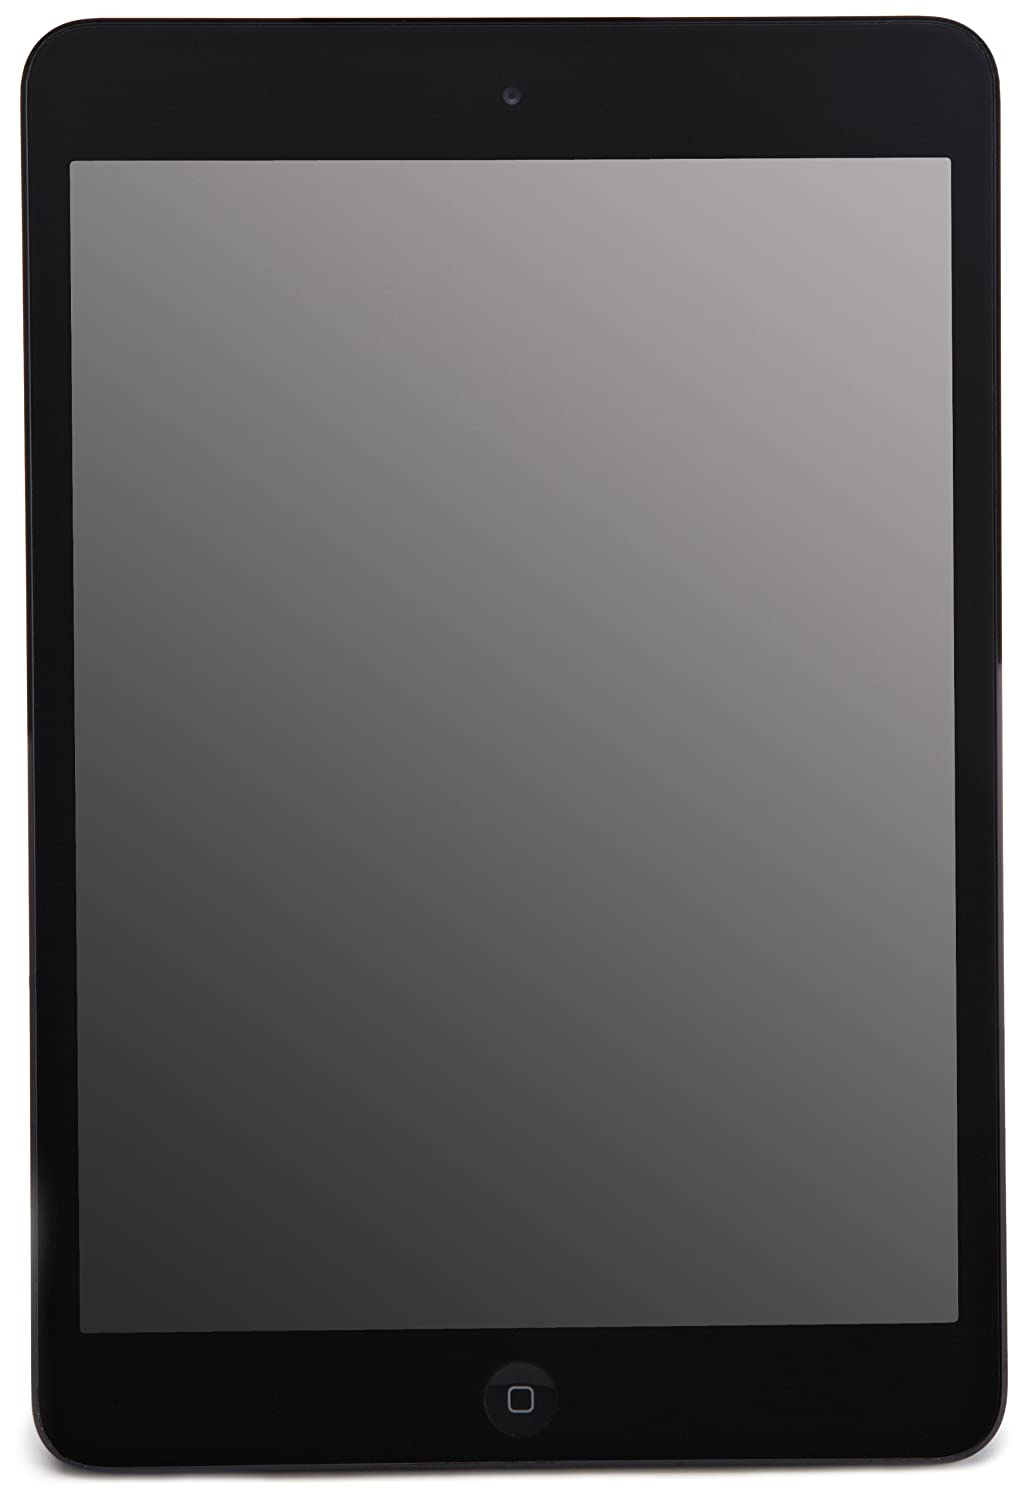 Apple iPad Mini MD530LL/A (64GB, Wi-Fi, Black) - $583.00